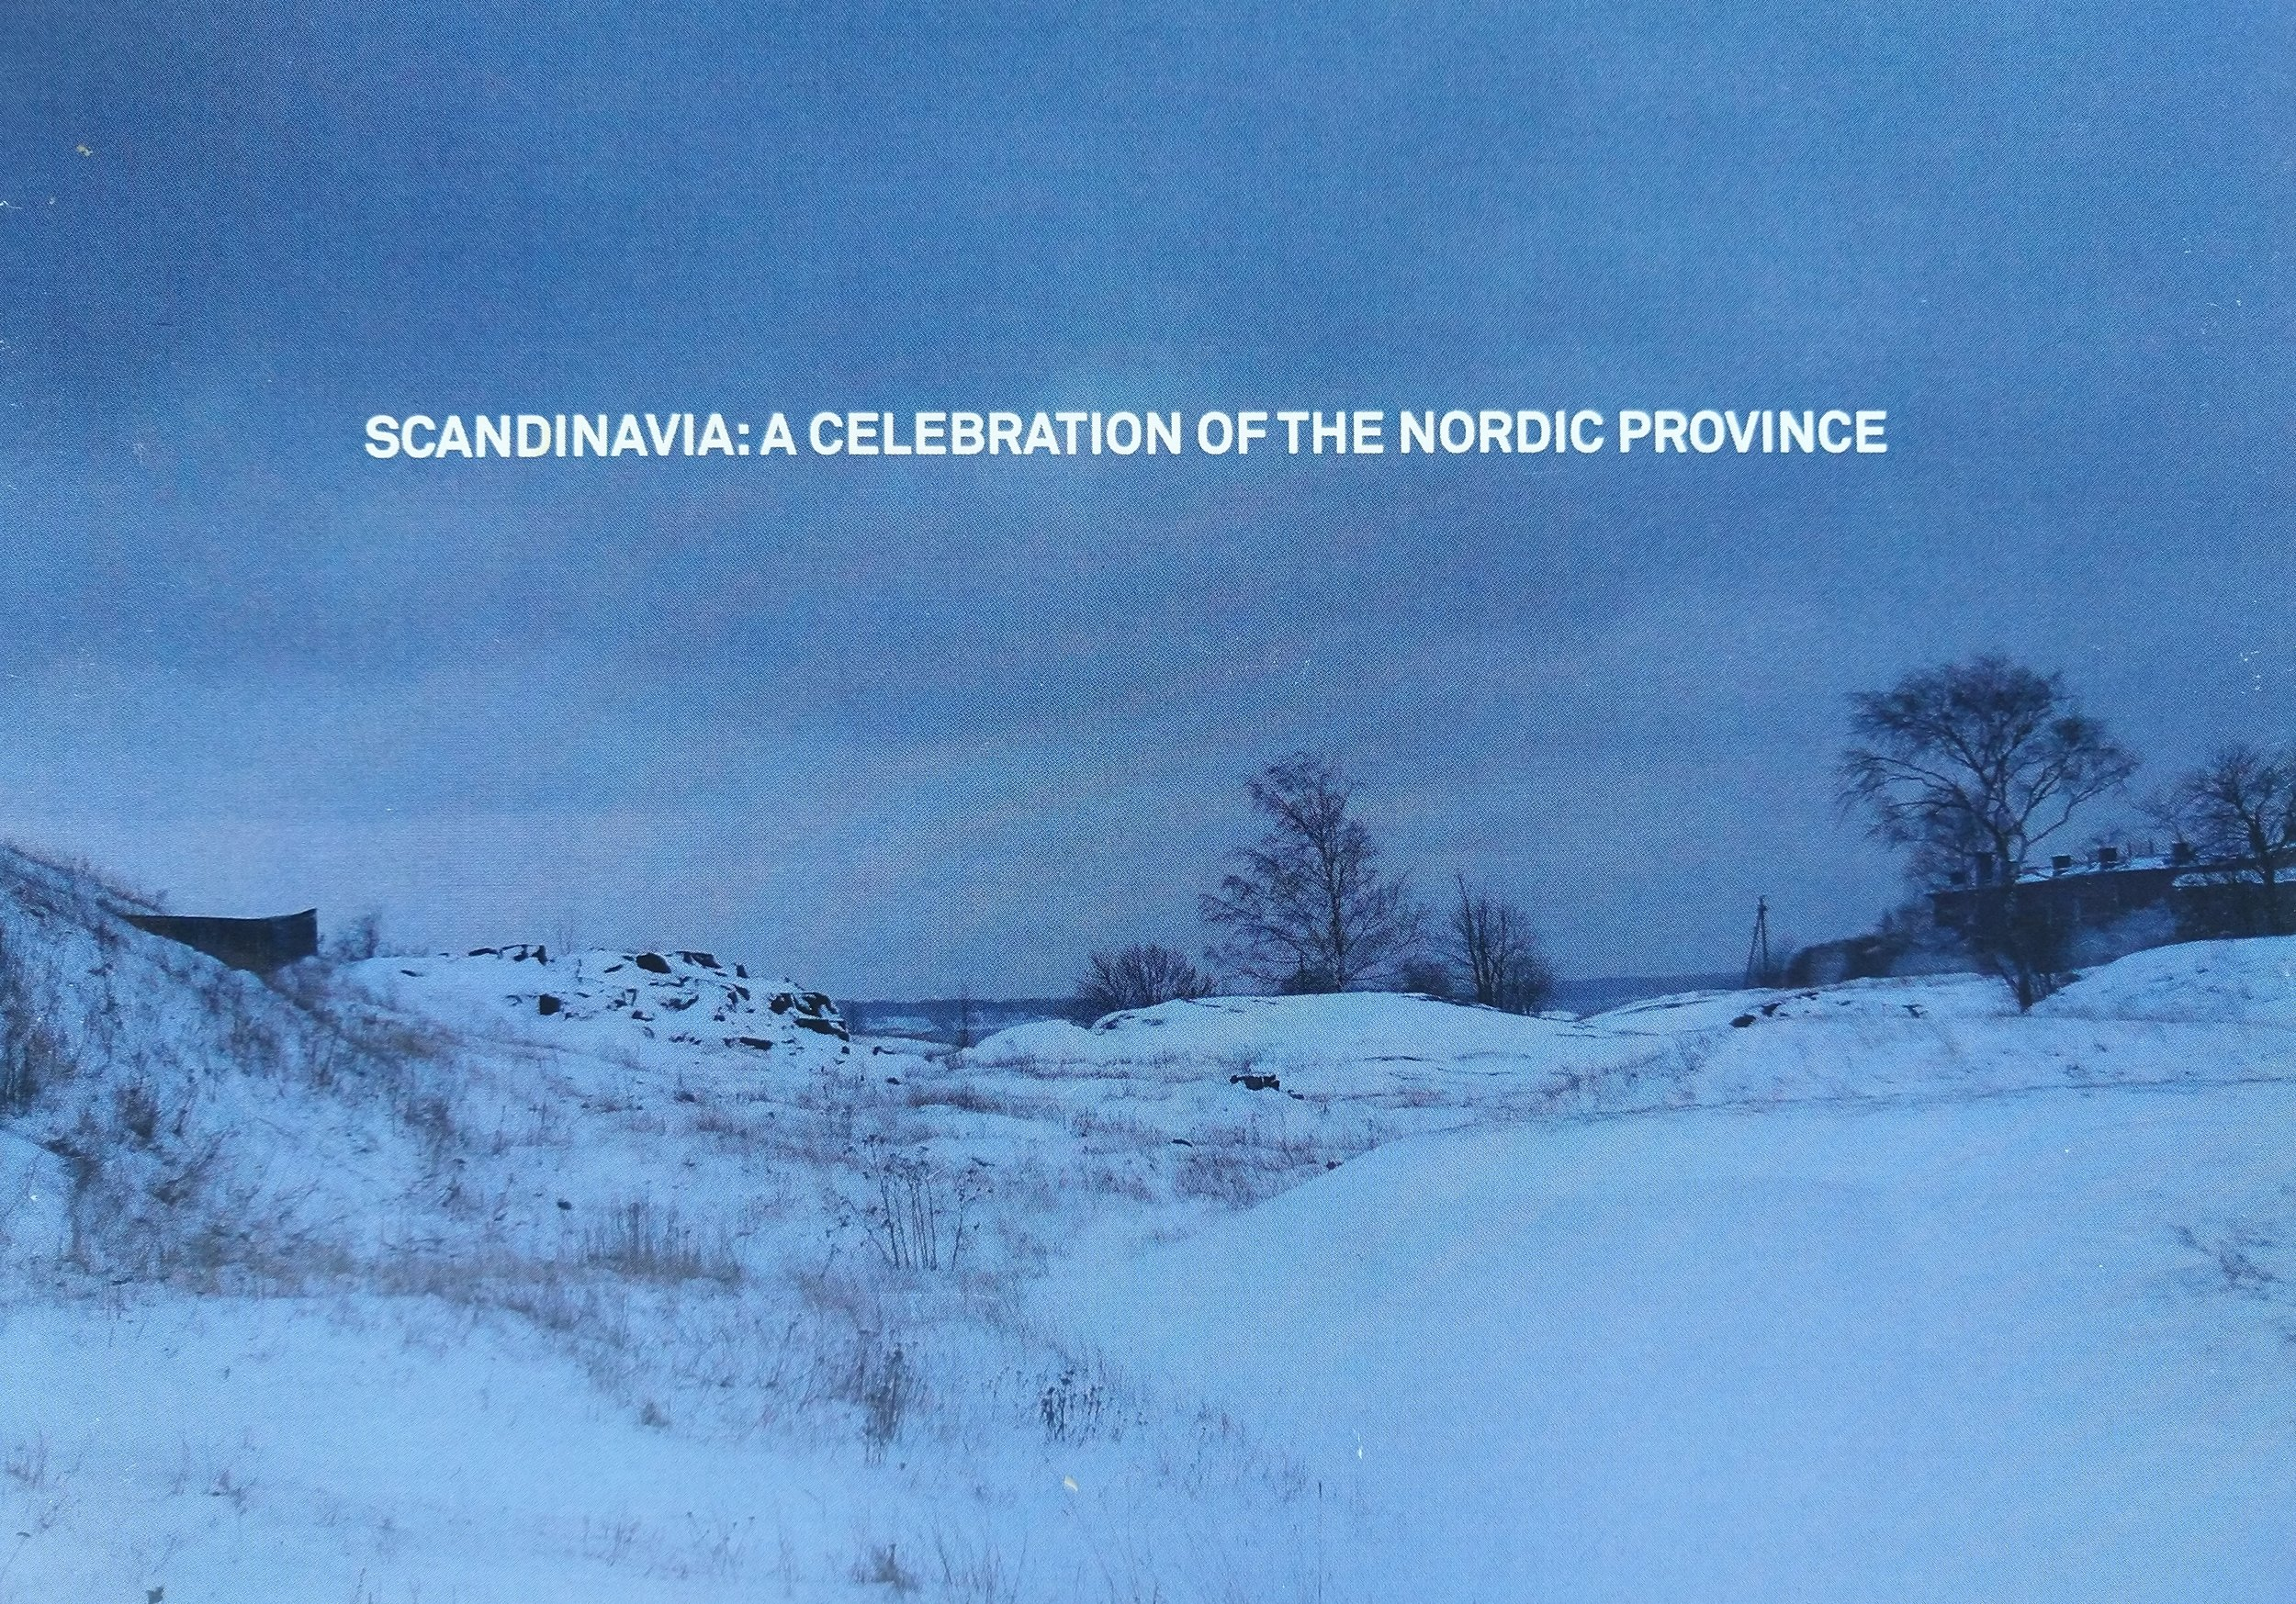 Scandinavia: A Celebration of the Nordic Province, Willesden Gallery -